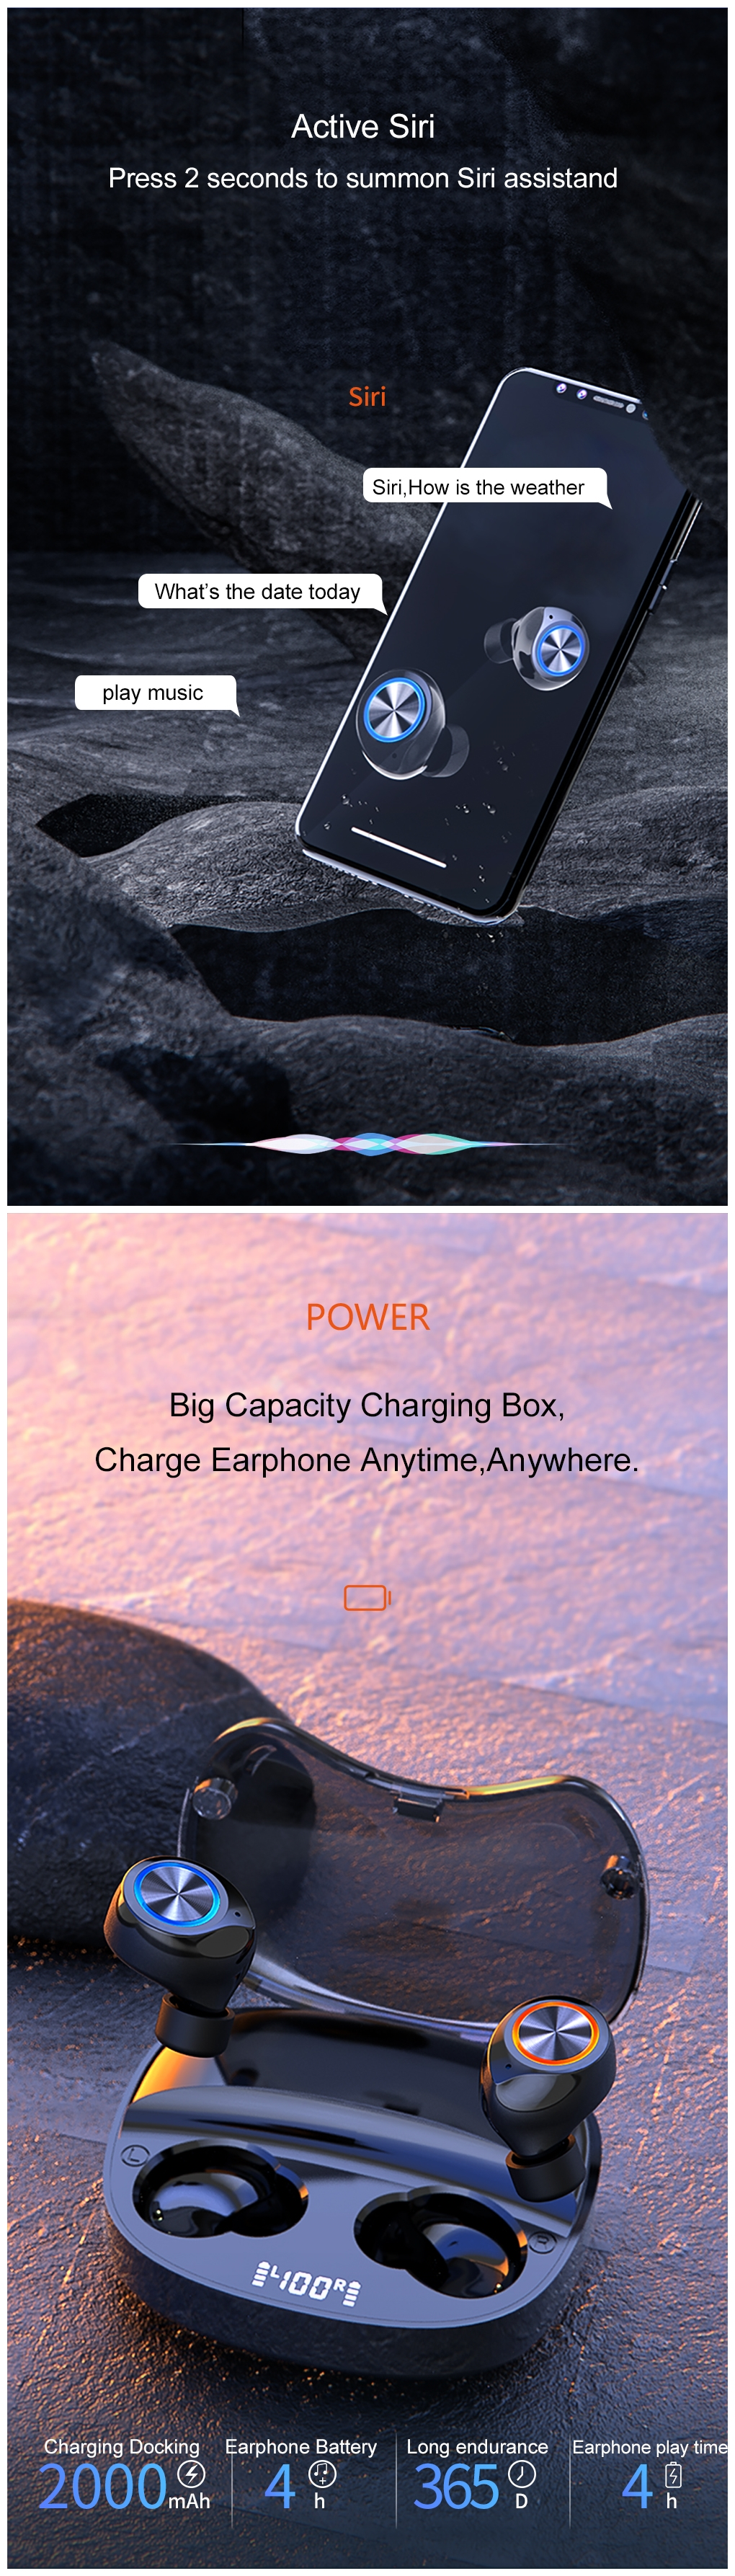 Wireless Earbuds With Power Bank 11